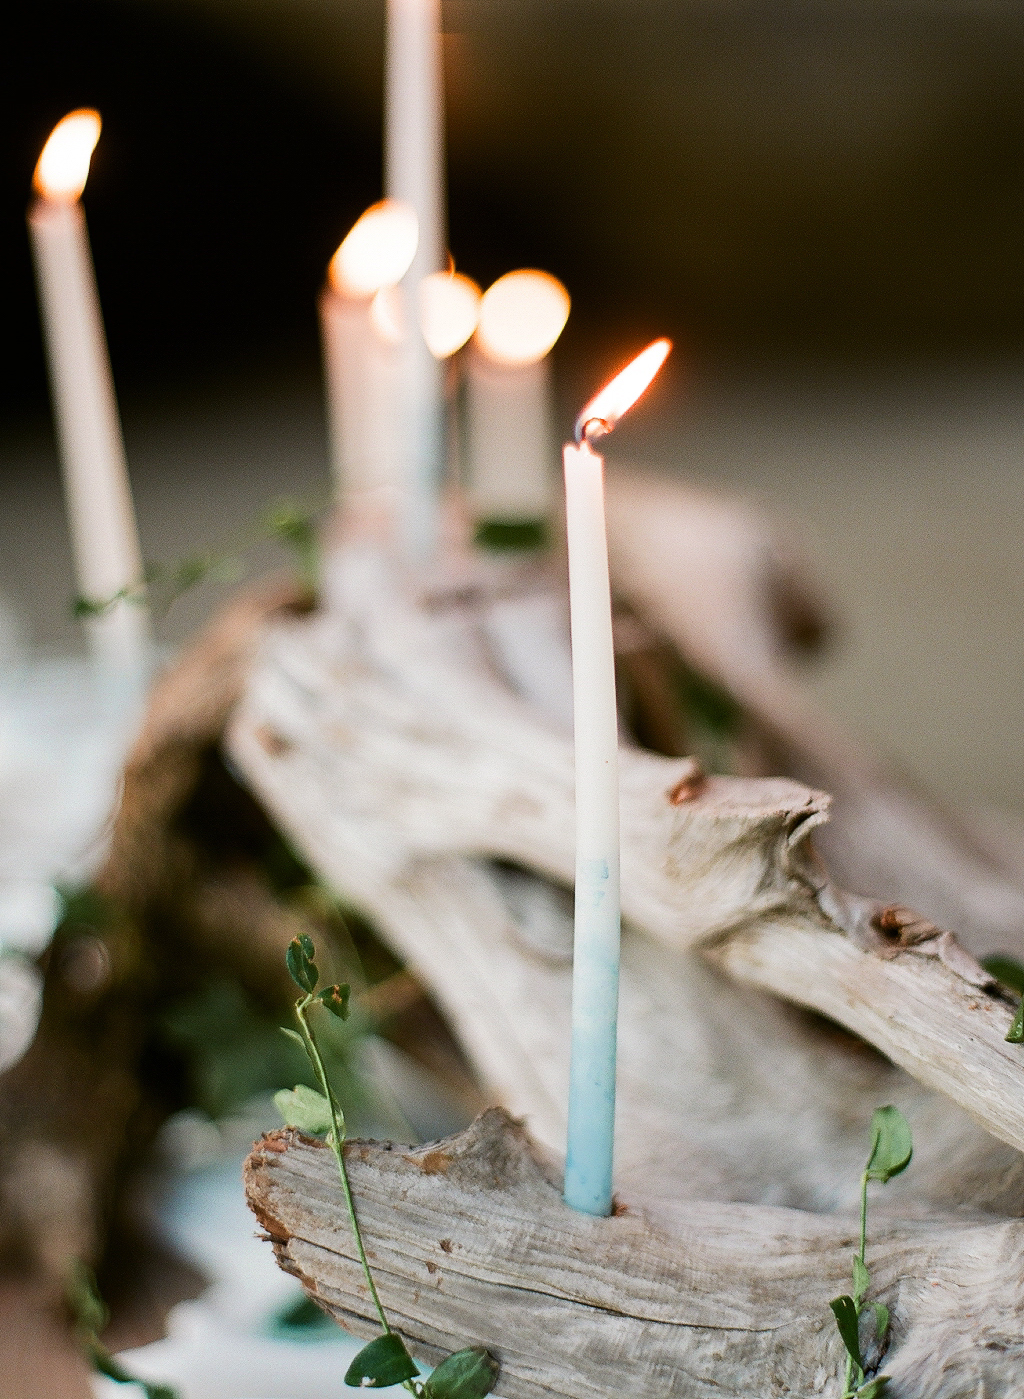 indigo dip-dyed taper candles in a driftwood centerpiece at this coastal wedding at the oregon coast wedding photographed by Destination WEdding Photographer Lexia Frank - a film photographer in portland oregon. TOP DESTINATION WEDDING PHOTOGRAPHY, OREGON COAST WEDDING, WWW DOT LEXIA FRANK DOT COM